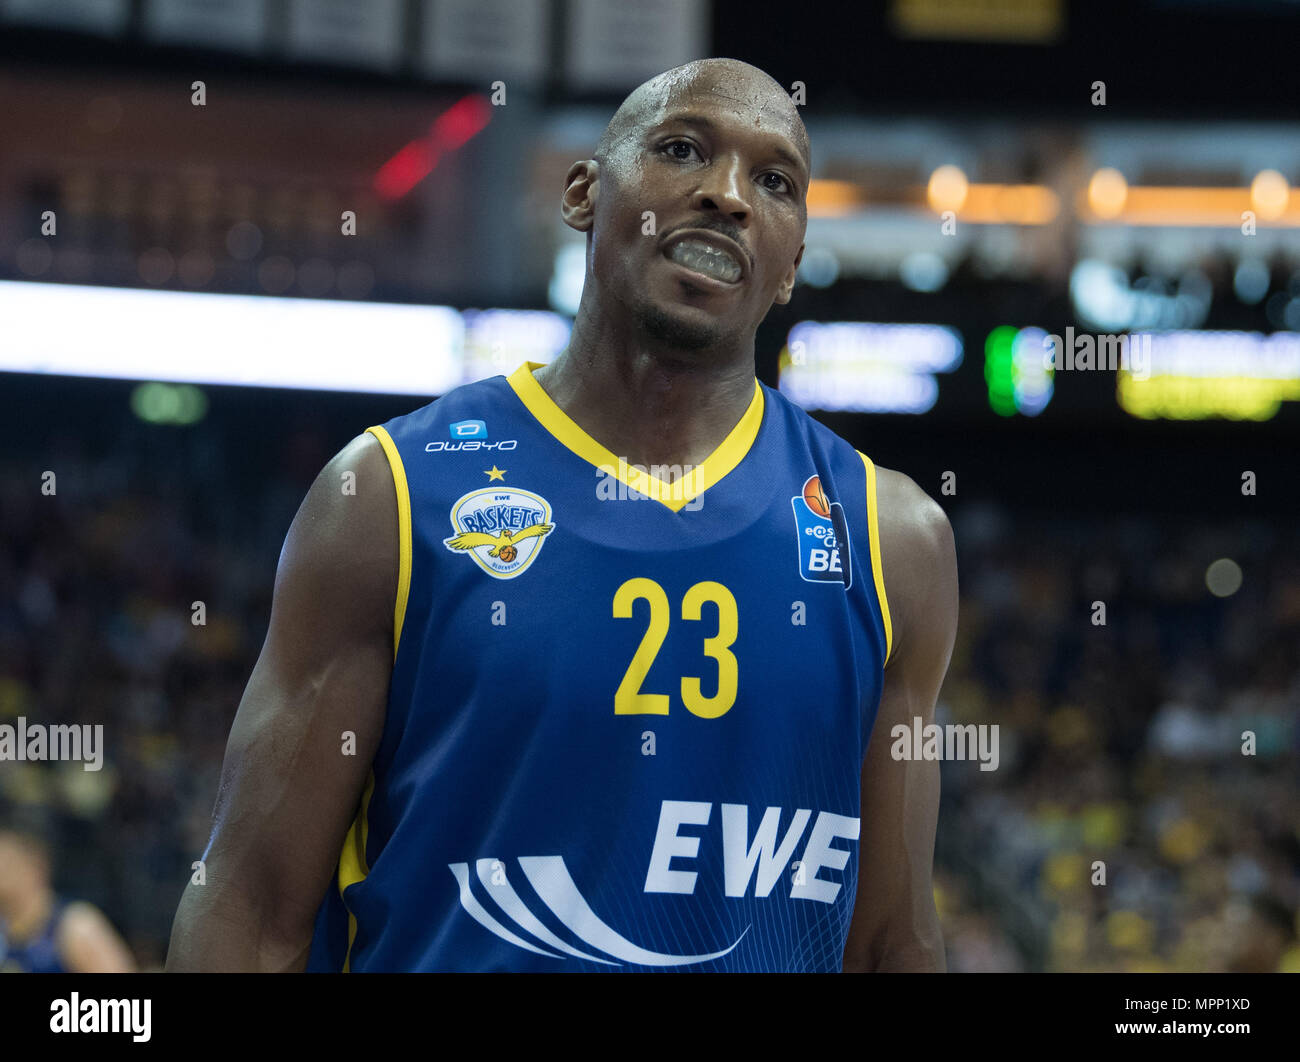 17 May 2018, Germany, Berlin: Bundesliga, quarter-final, ALBA Berlin vs. EWE Baskets Oldenburg in the Mercedes-Benz arena. Oldenburg's Rickey Paulding. Photo: Soeren Stache/dpa - Stock Image